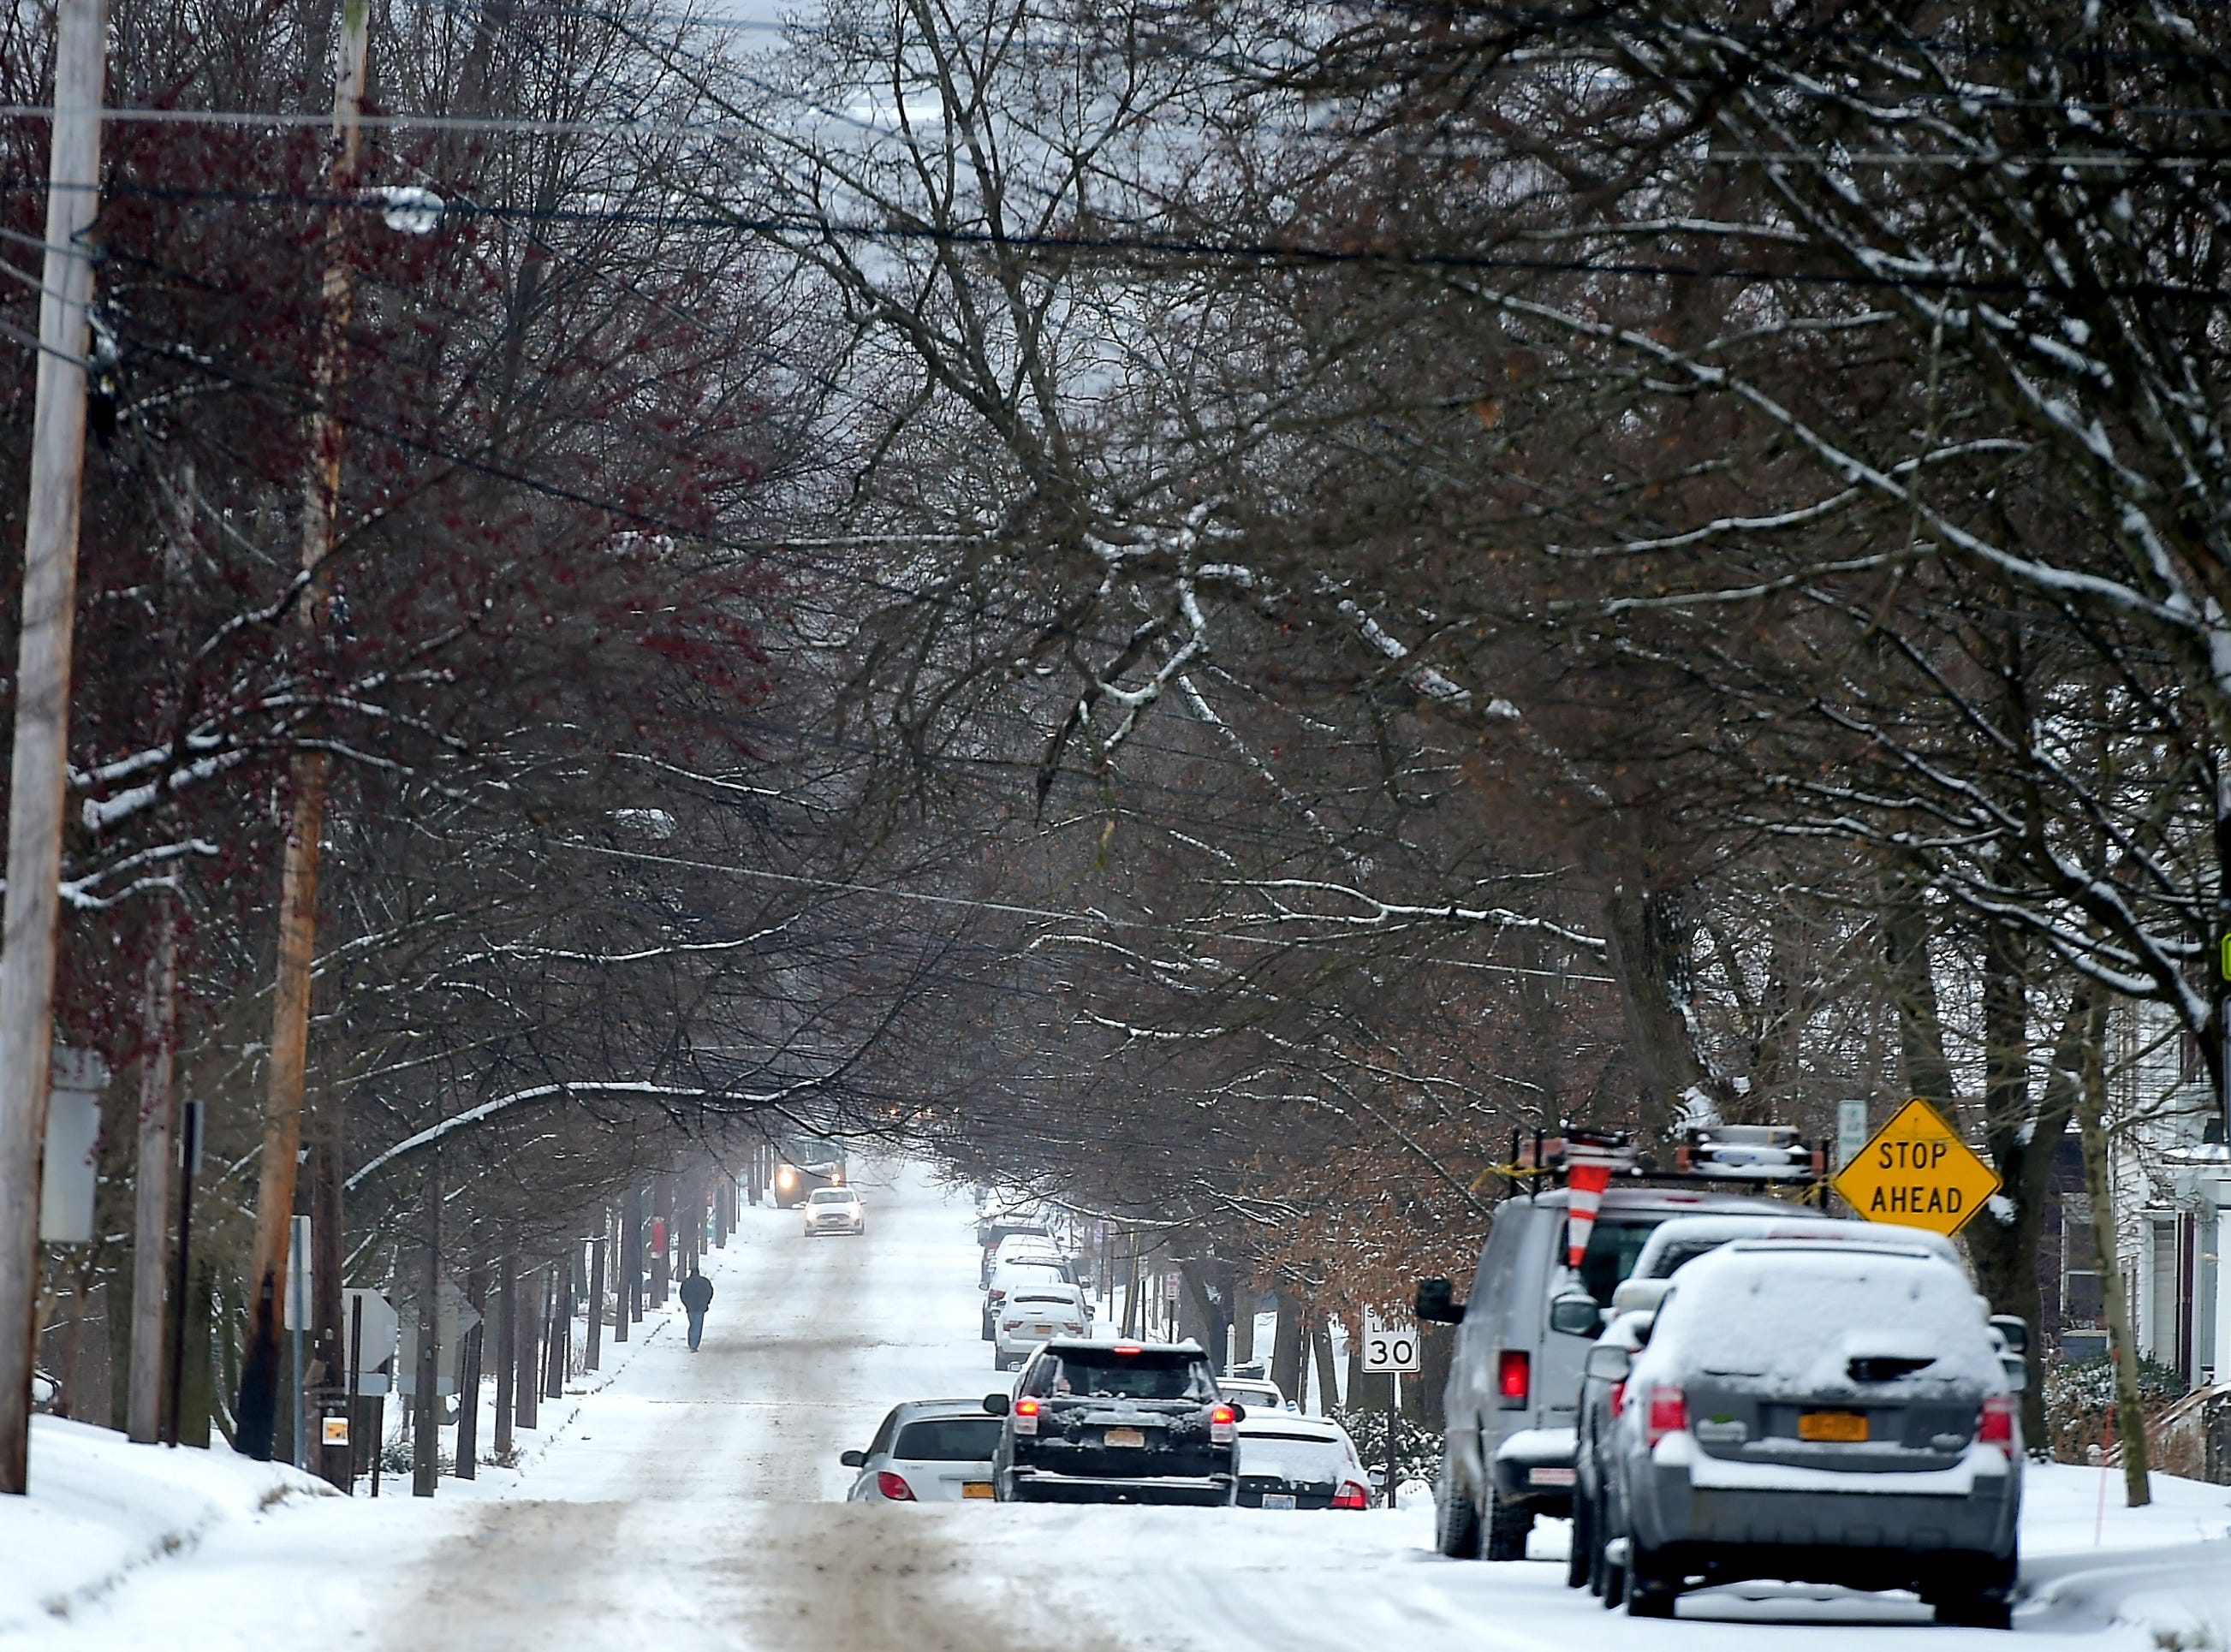 A winter storm brought snow, ice and high winds to Ithaca and the surrounding regions on Tuesday, February 12, 2019.